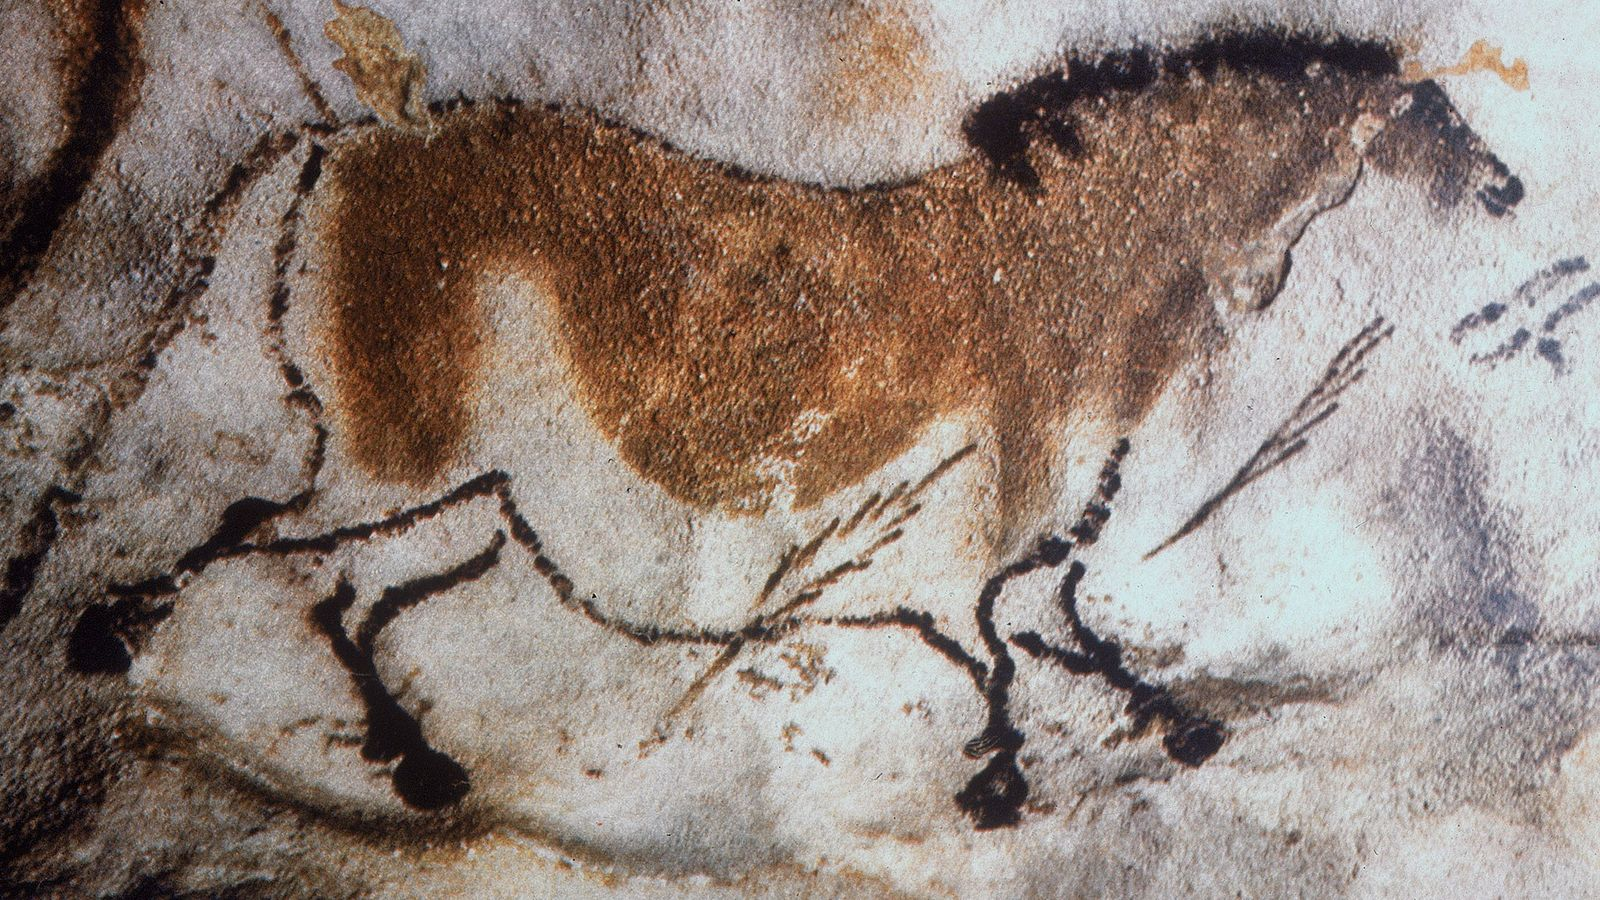 A horse and arrows found painted on the ceiling of Lascaux Cave in Dordogna, France.